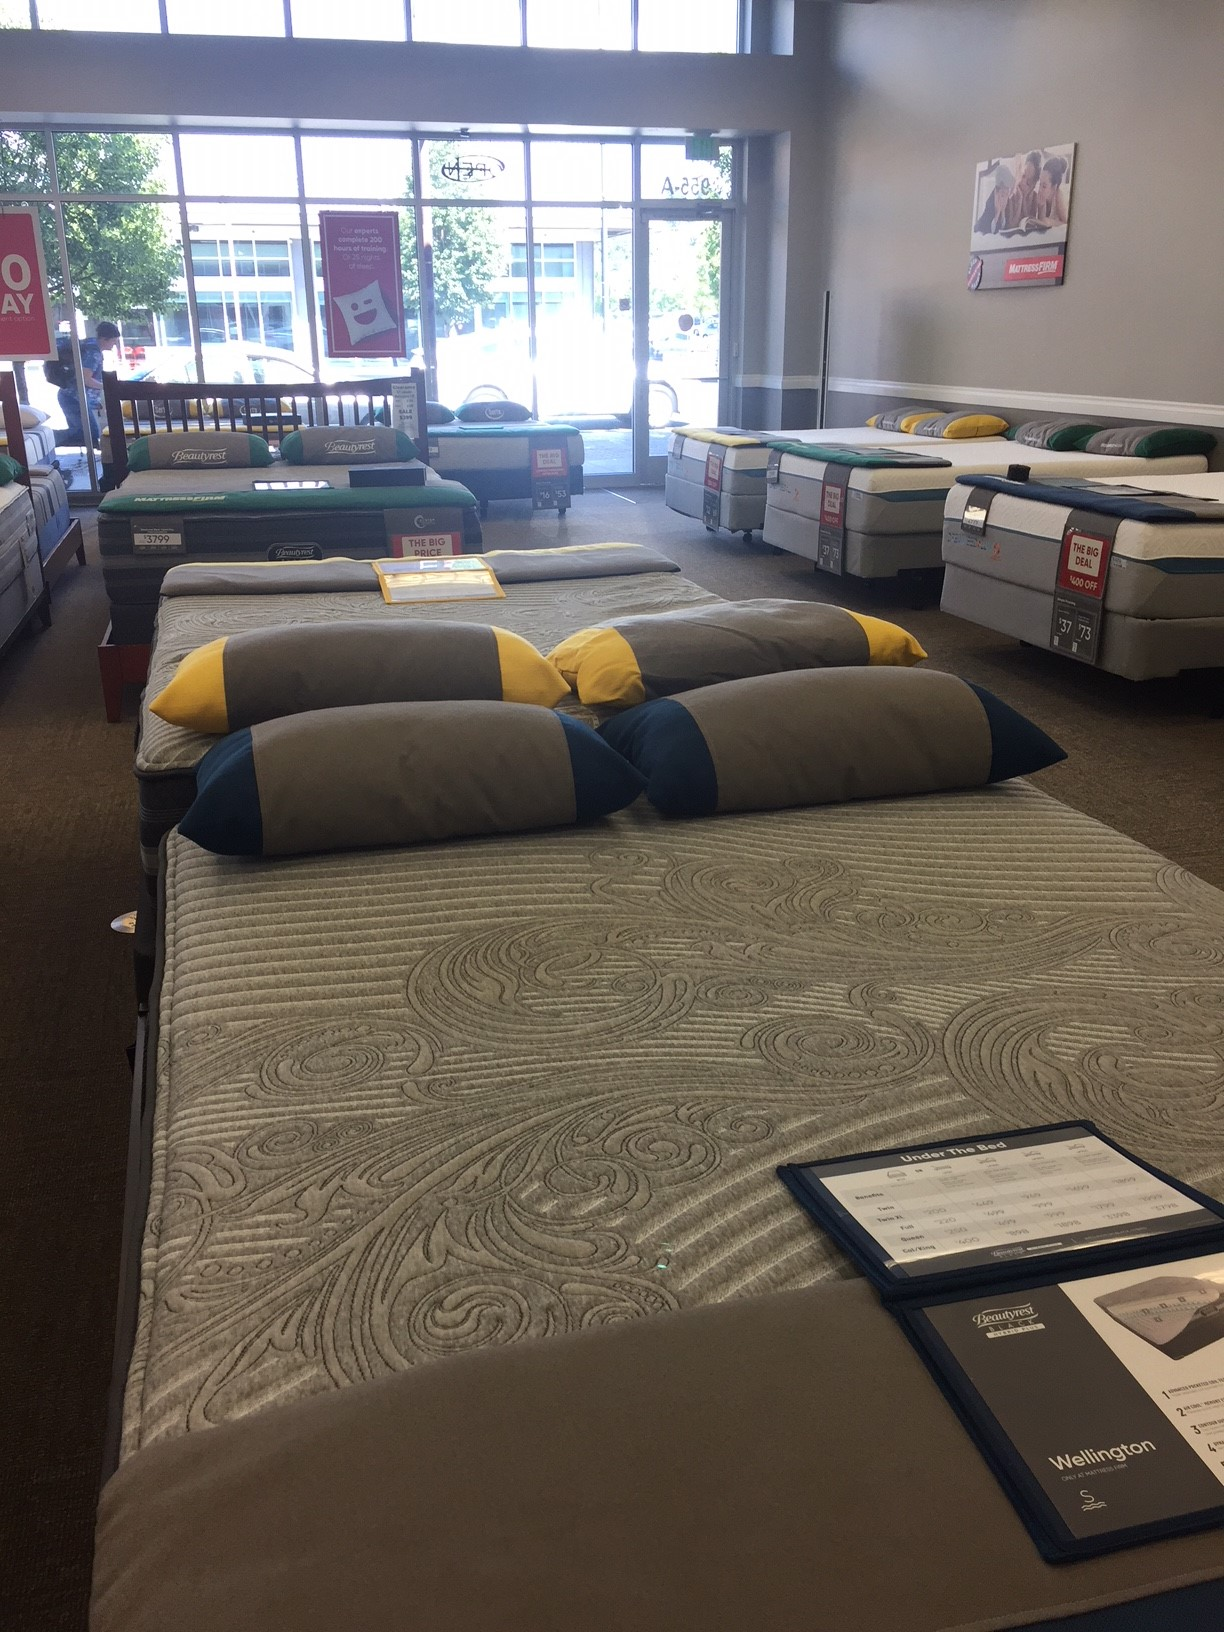 Mattress Firm The Landing image 4